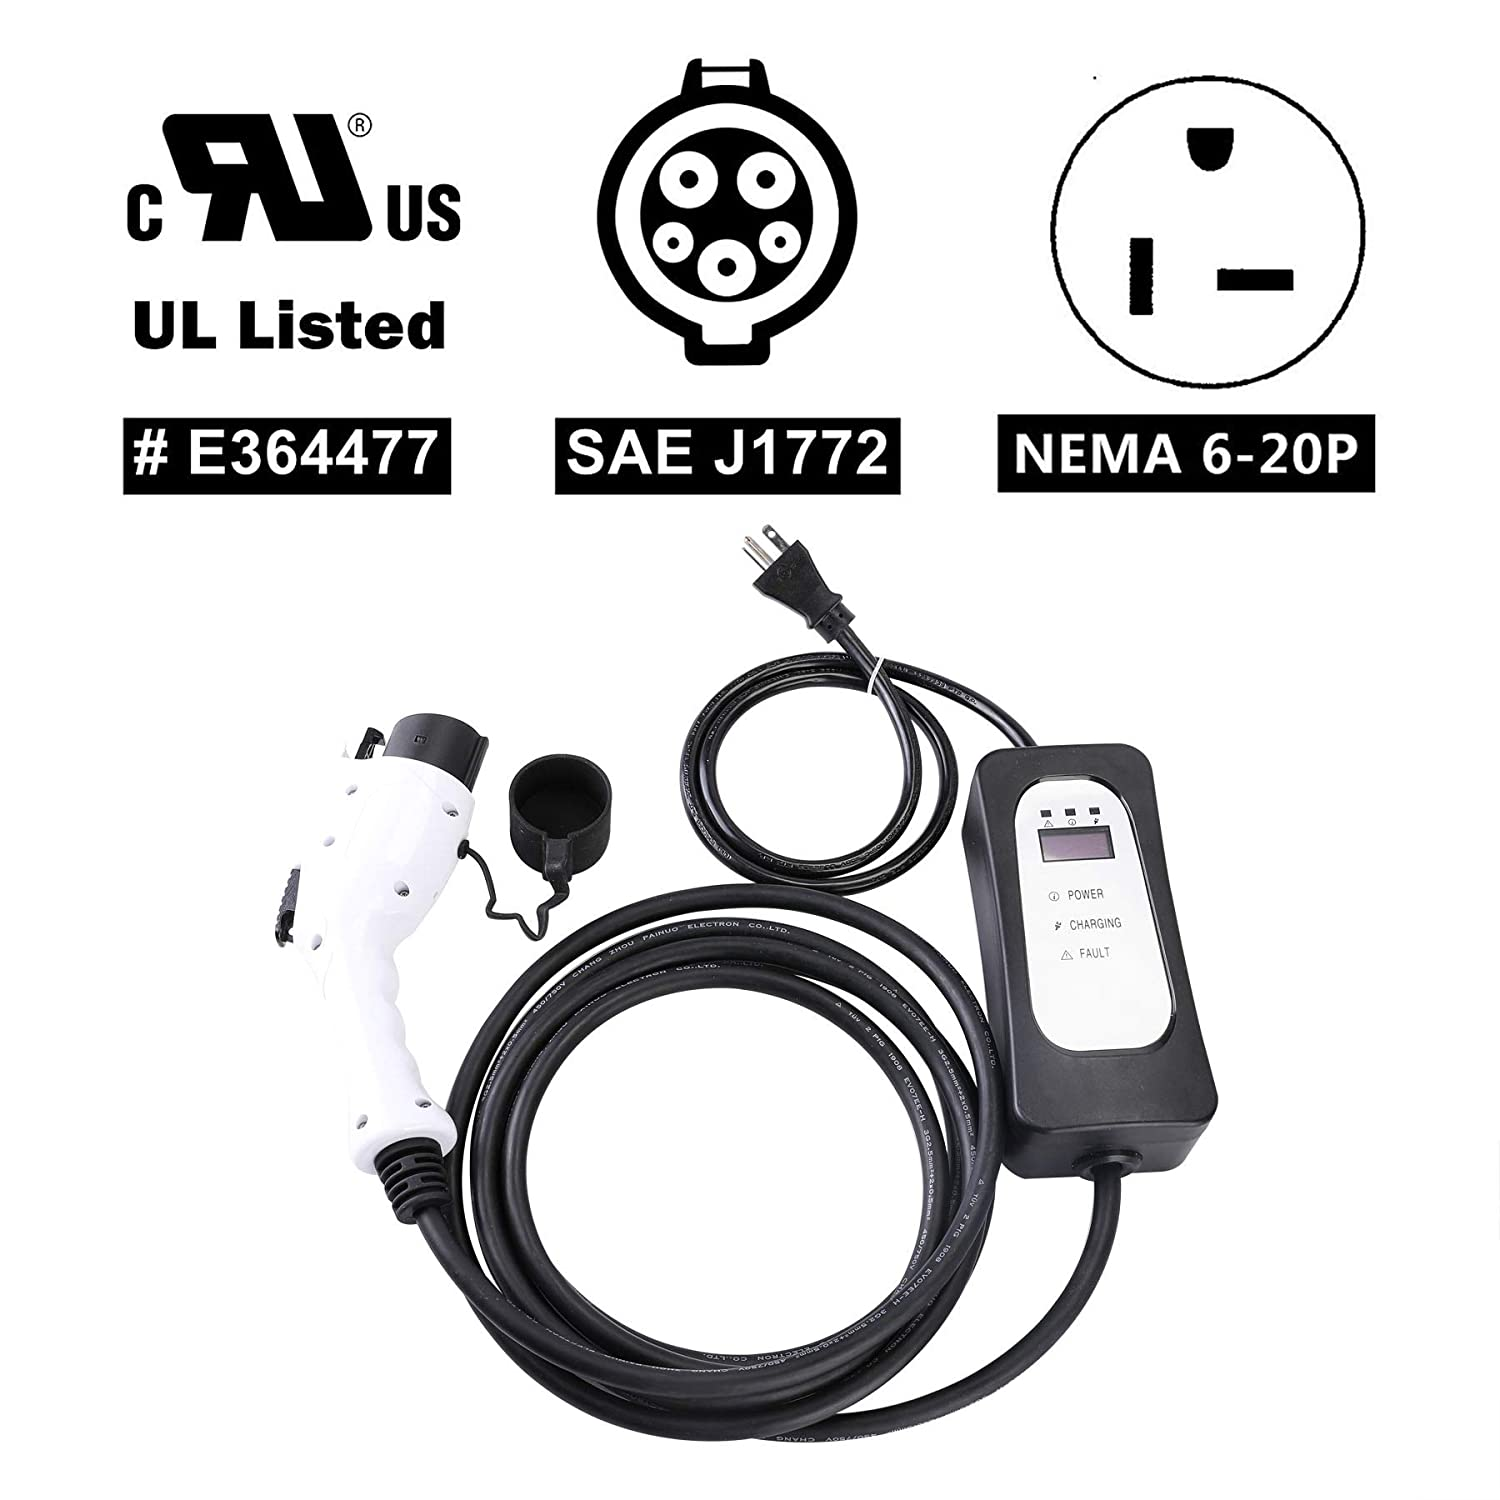 Level 2 EV Charger Nissan Leaf Ford Fusion Fiat Portable EVSE Home Electric Vehicle Charging Station Compatible with Chevy Volt Orion Motor Tech NEMA6-20 with Adapter for NEMA5-15 110V-240V, 16A, 23FT